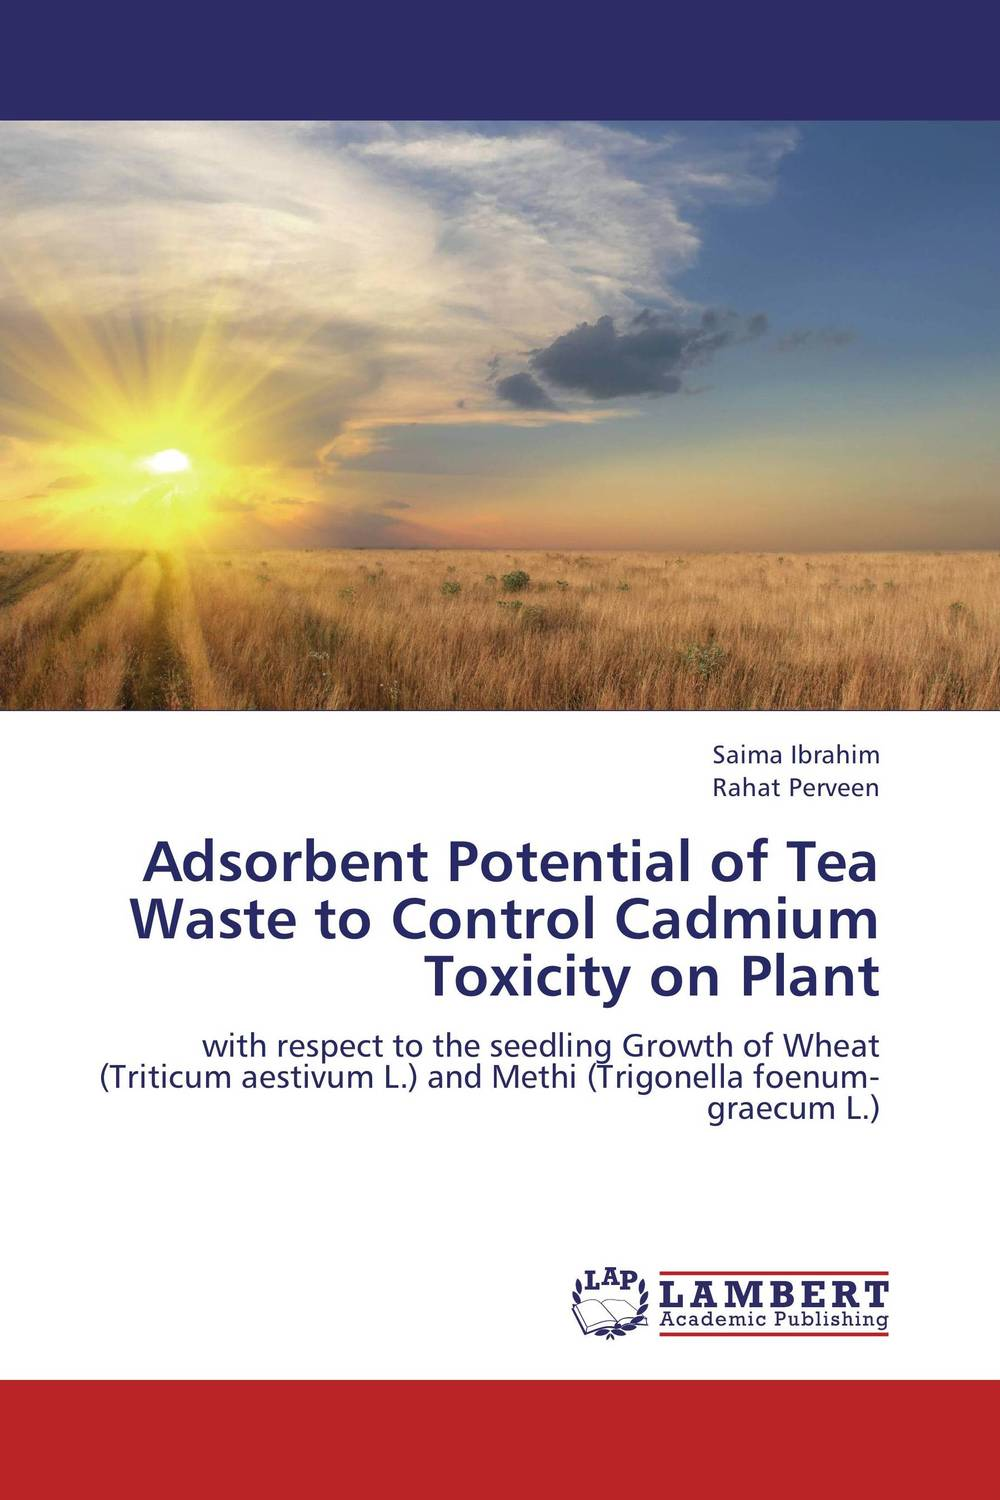 Adsorbent Potential of Tea Waste to Control Cadmium Toxicity on Plant cadmium from earth crust to fish tissues